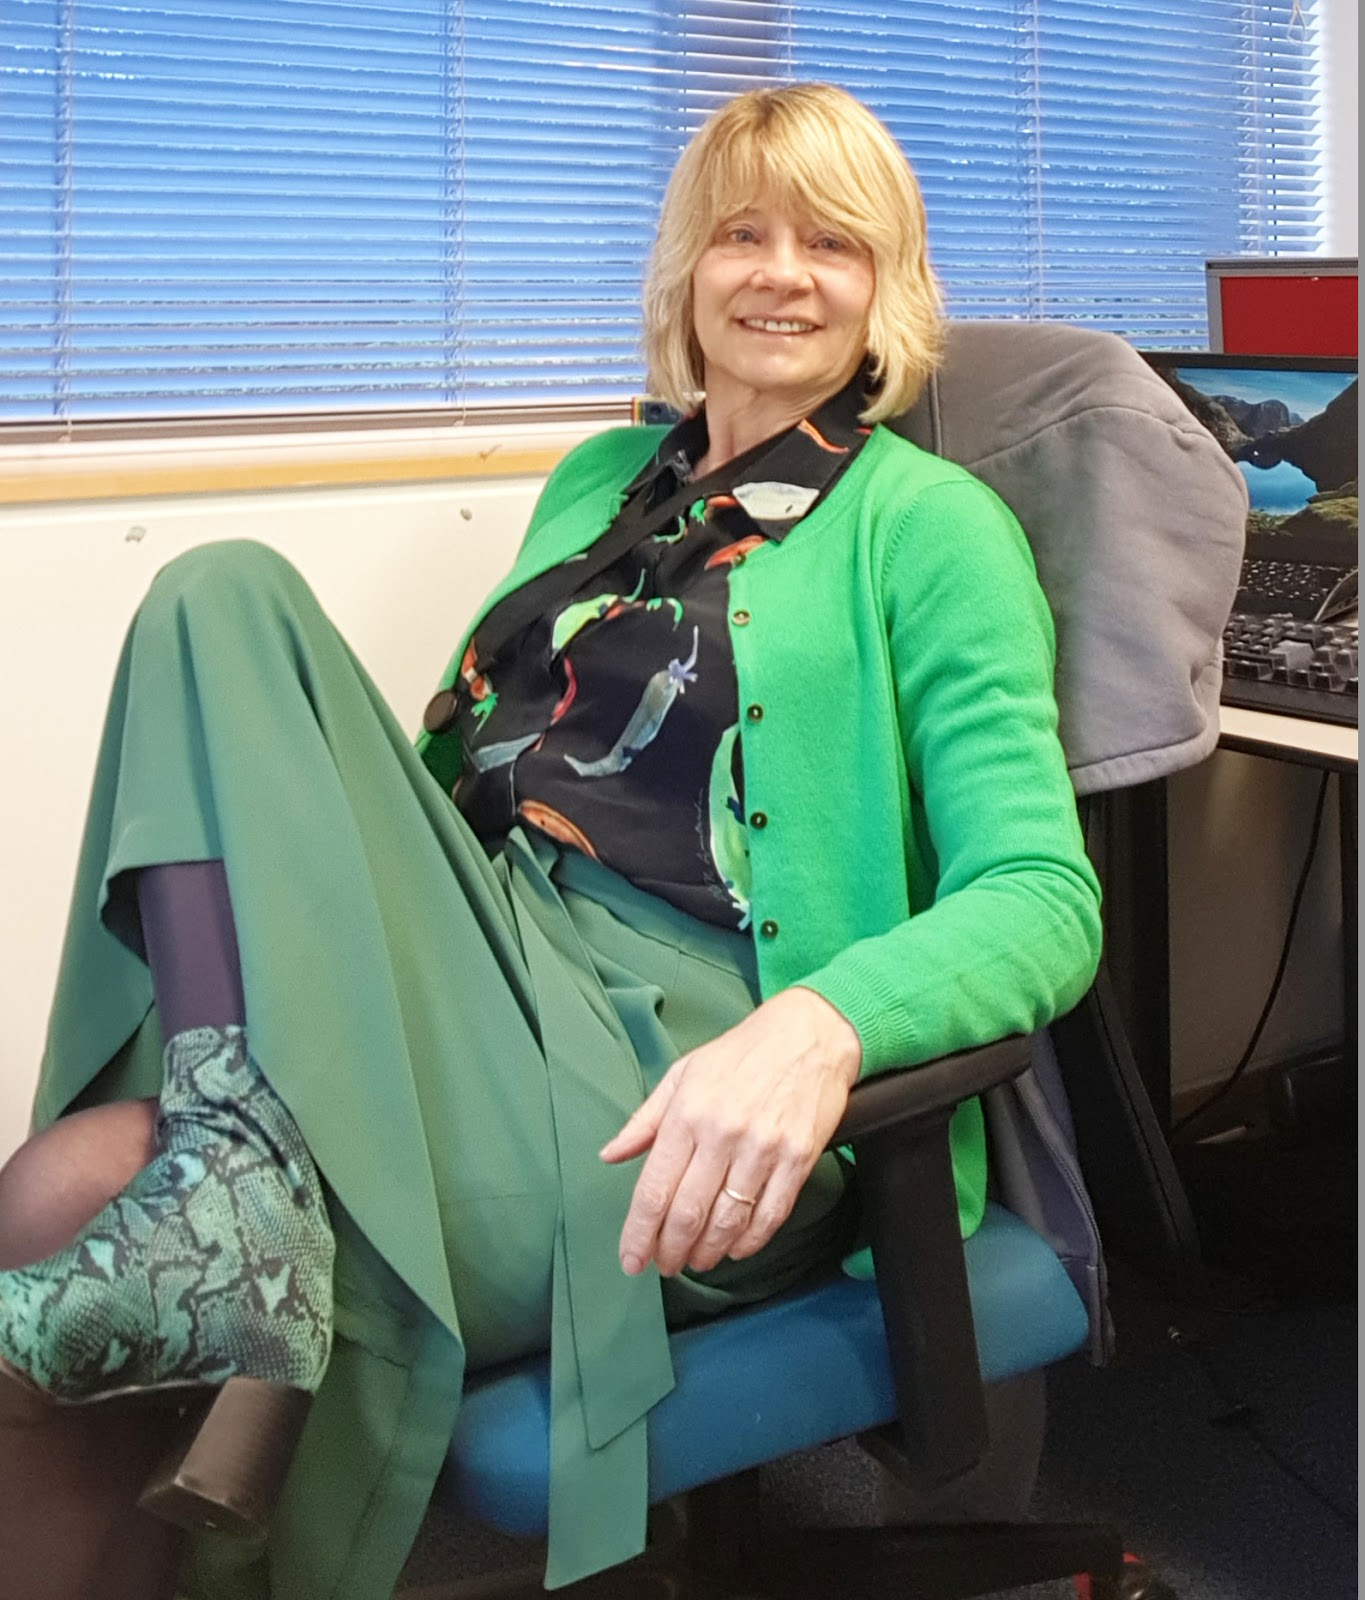 Over-50s style blogger Gail Hanlon from Is This Mutton in tones of green with snakeskin boots